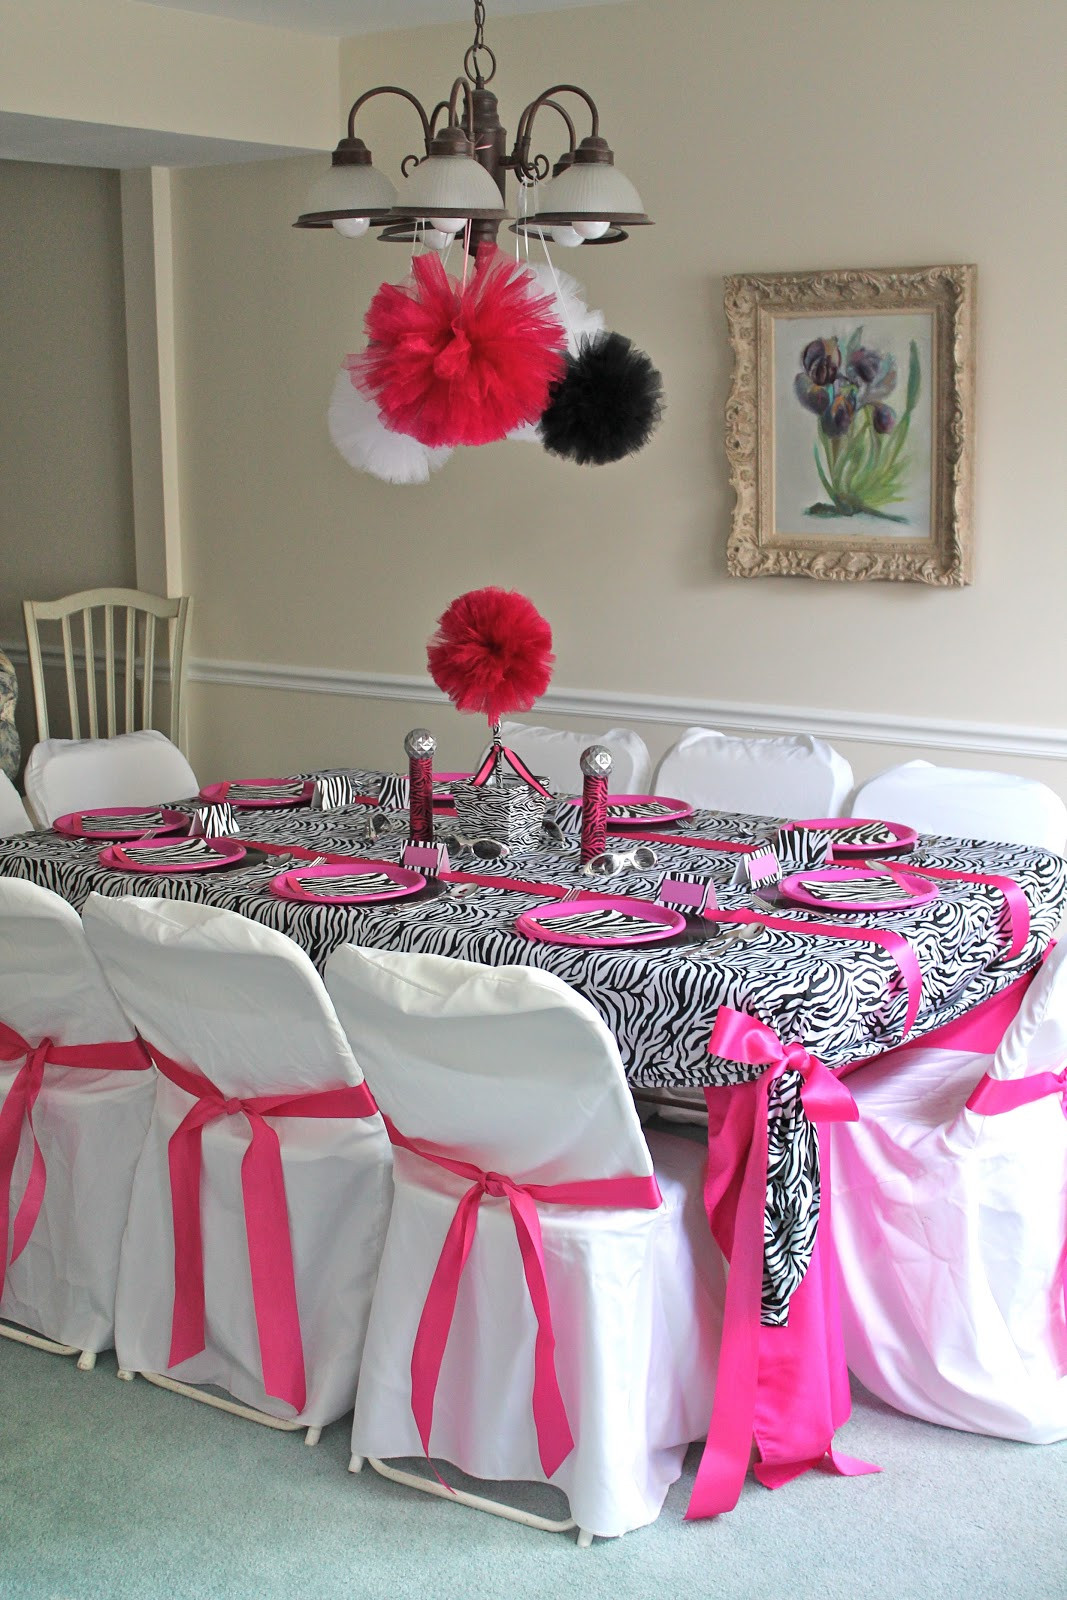 Best ideas about Pink Birthday Party Decorations . Save or Pin Pretti Mini Blog Zebra & Pink Pop Star Party Now.